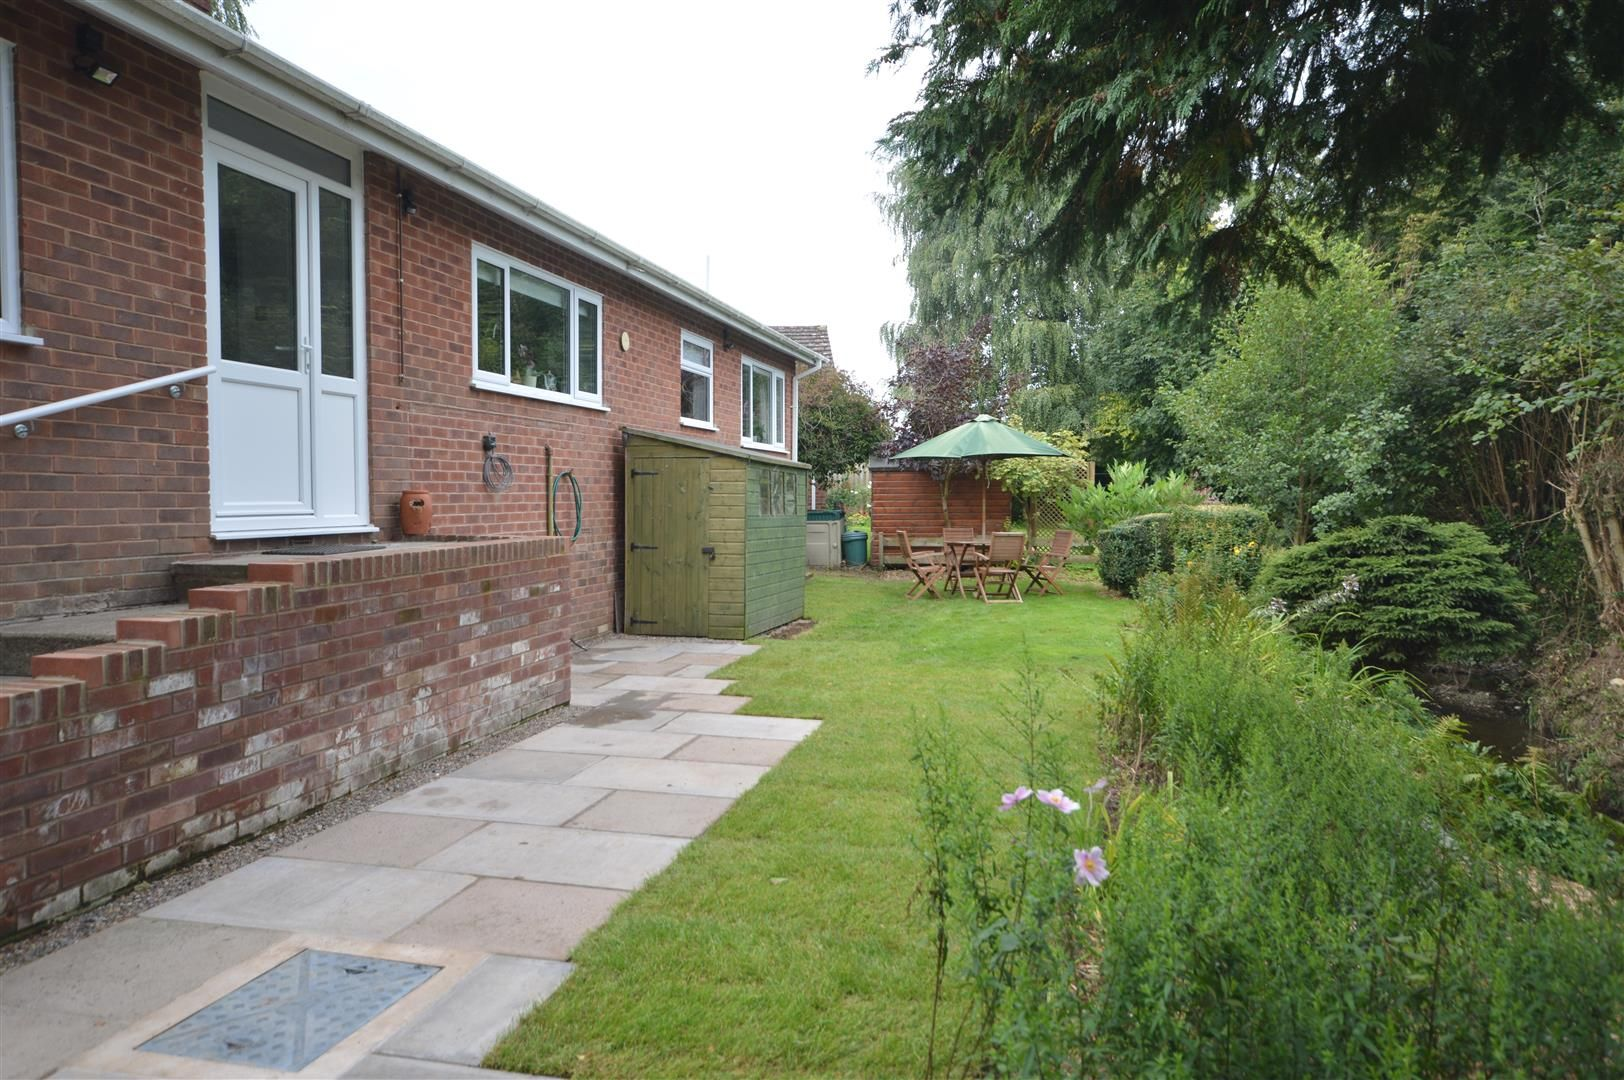 3 bed detached-bungalow for sale in Orleton 15